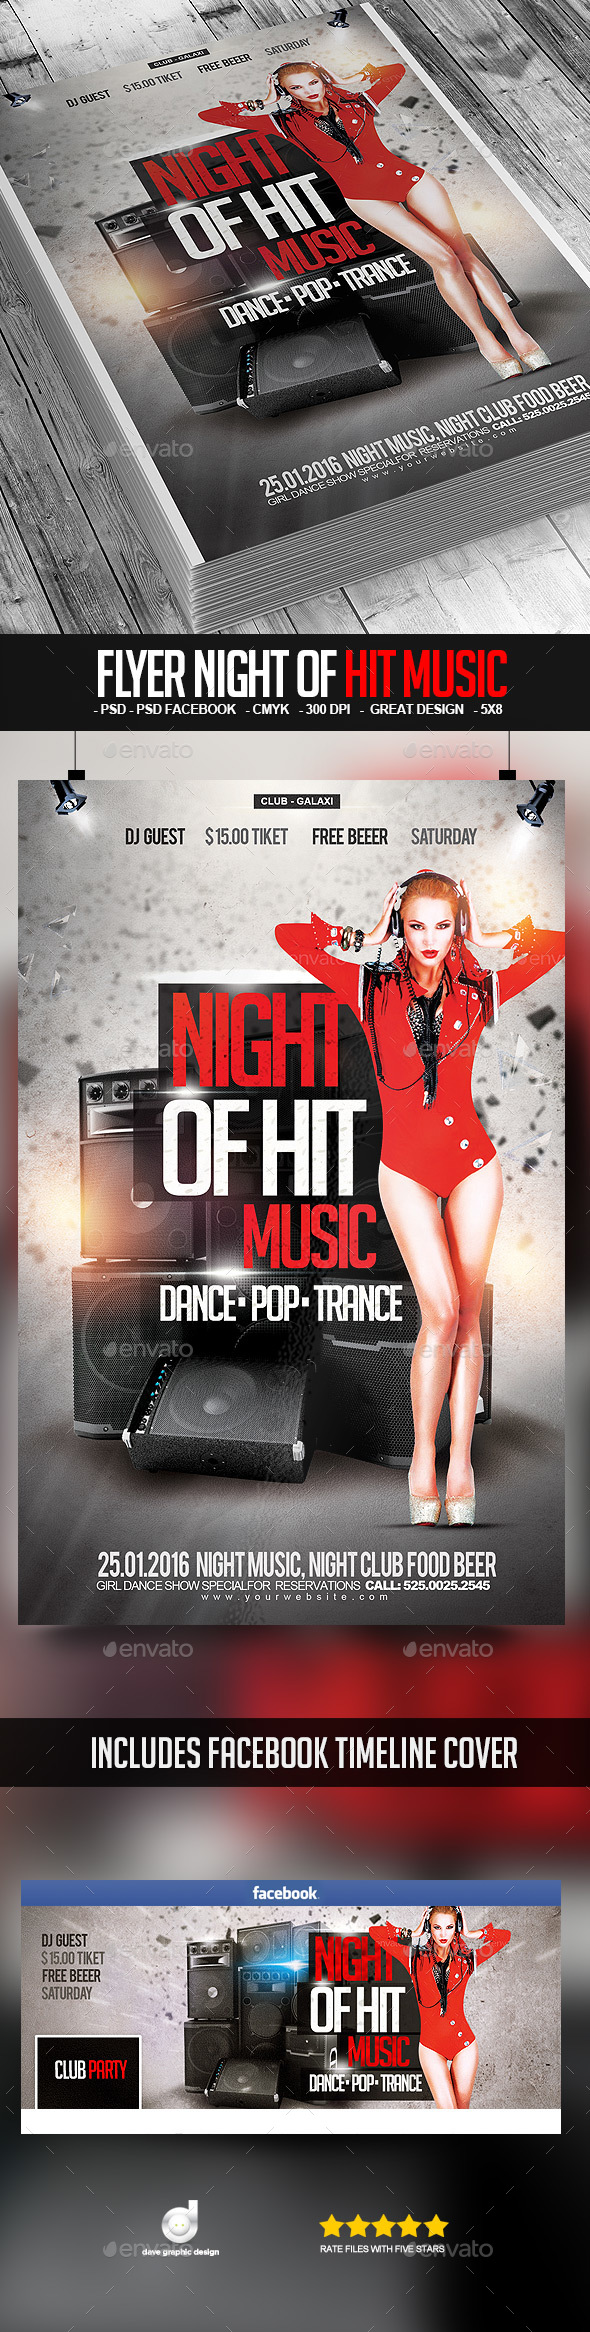 Flyer Night of Hit Music - Clubs & Parties Events